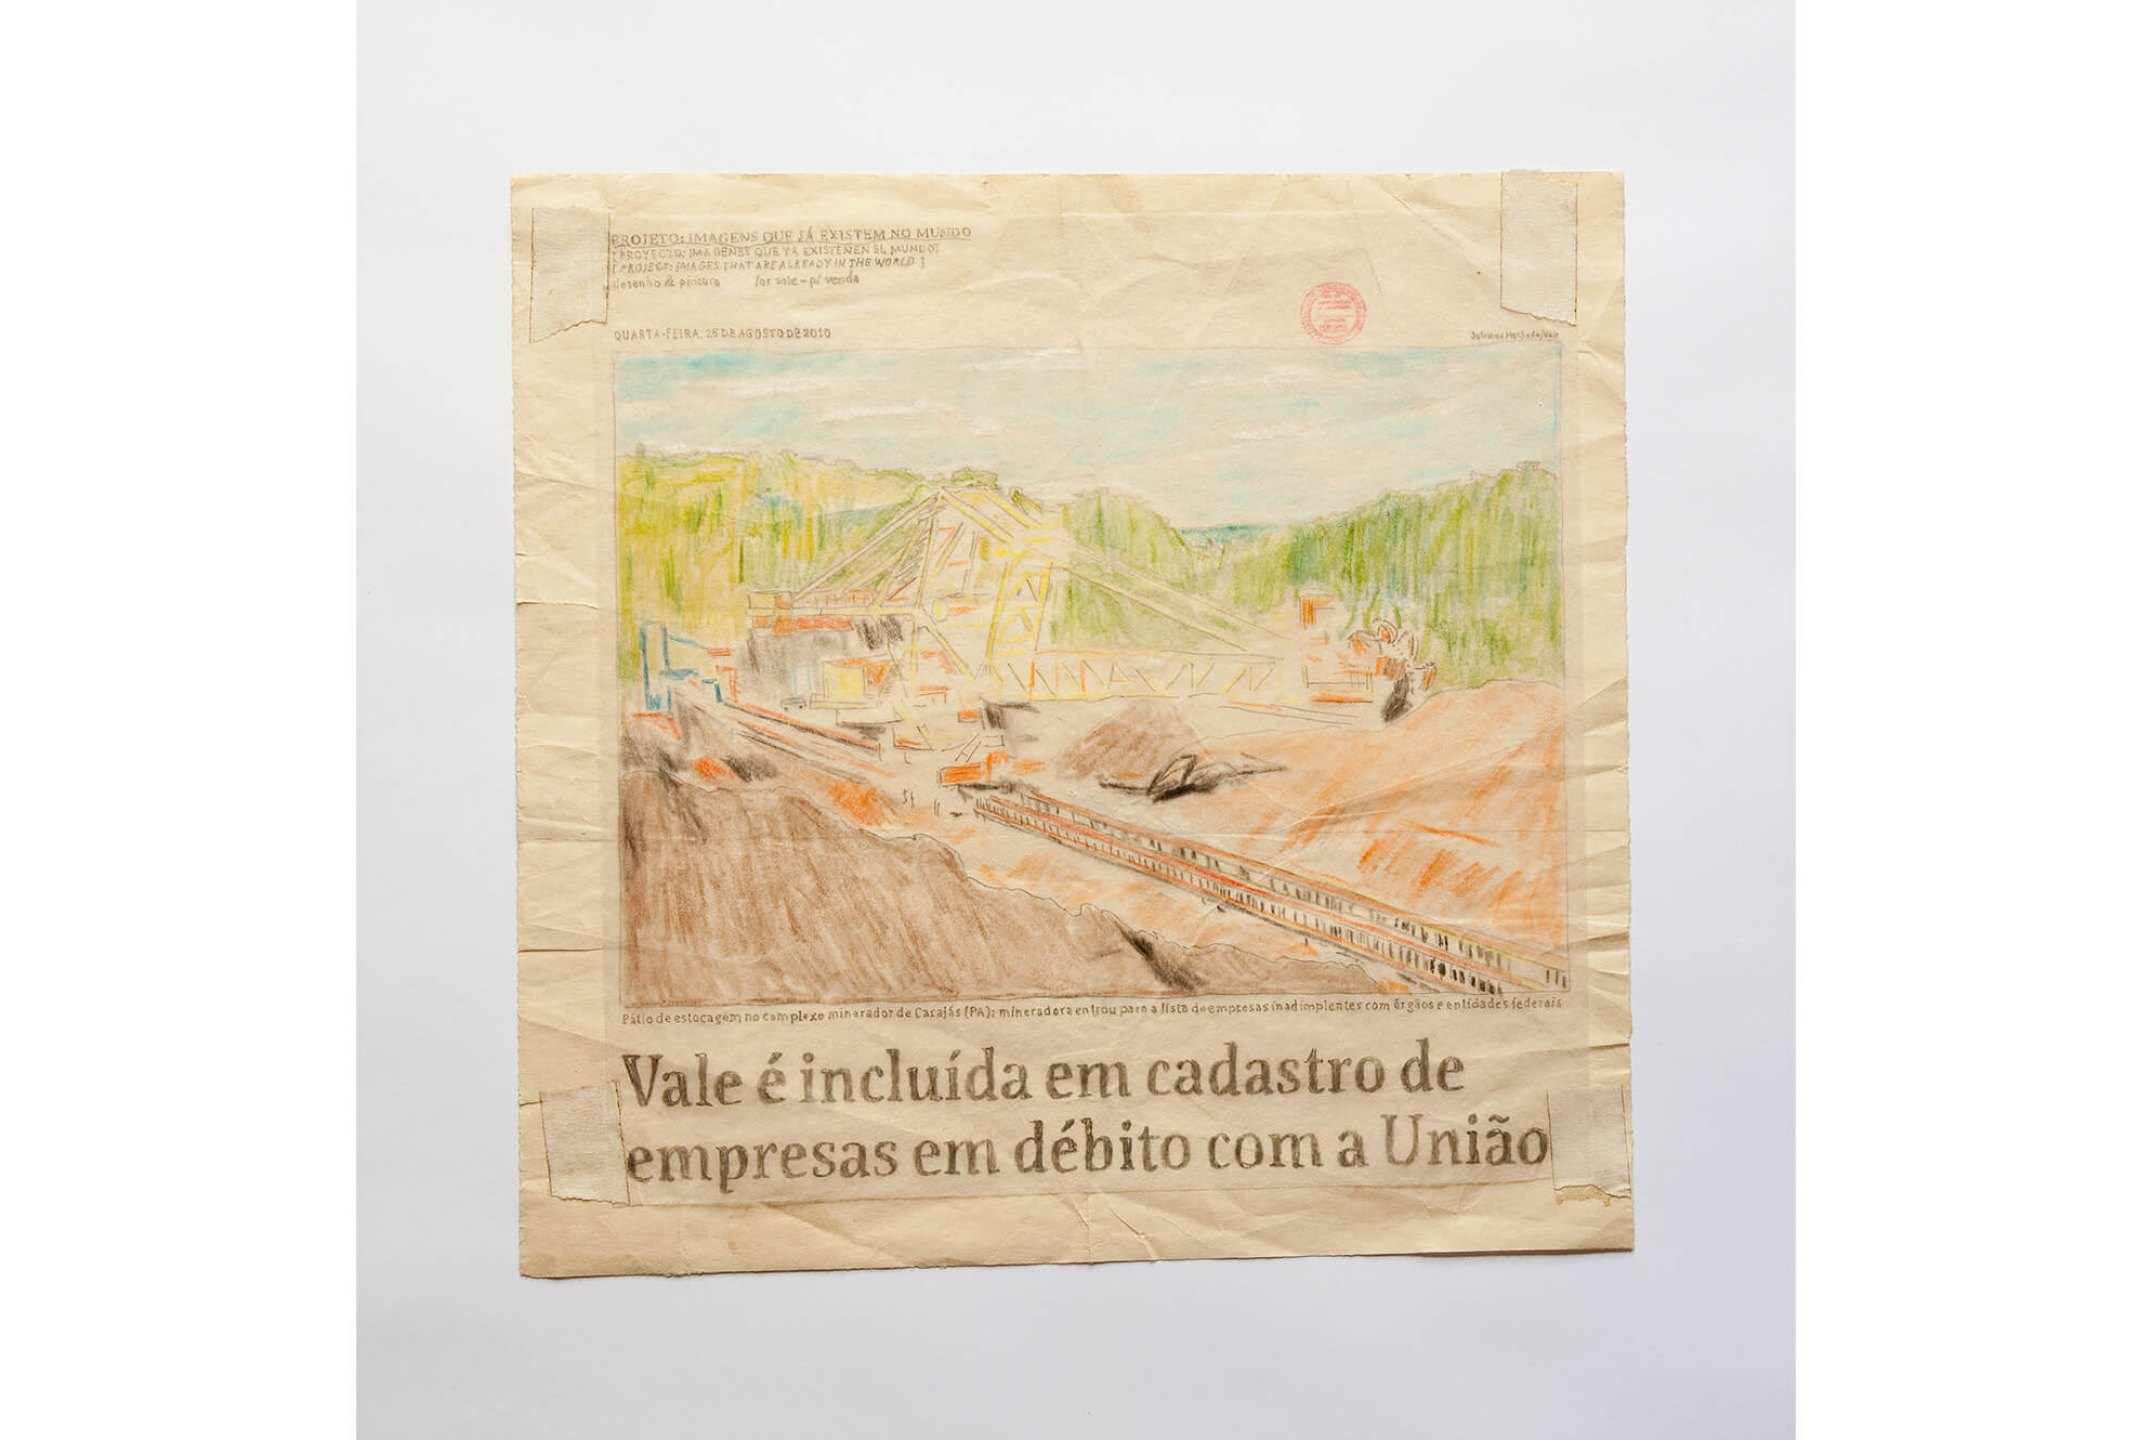 Paulo Nazareth, <em>From the project: Images that already exist in the world,</em> pencil and watercolor on paper, 28 × 29 cm - Mendes Wood DM